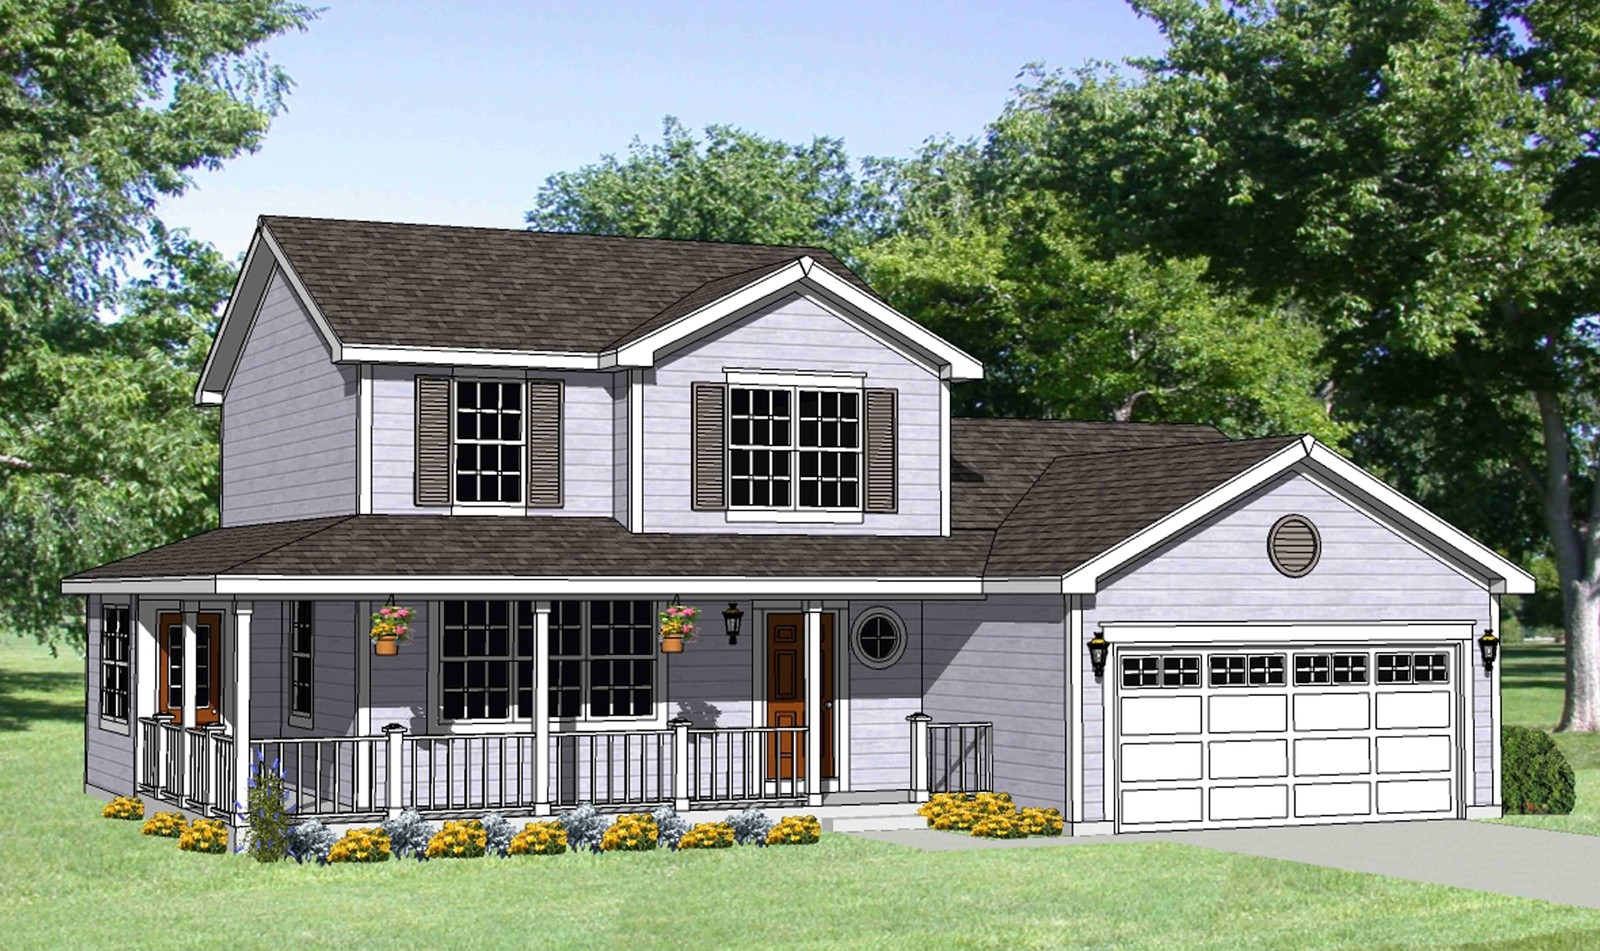 Country house plan with wrap around porch 12729ma 1st for Free house plans with wrap around porch